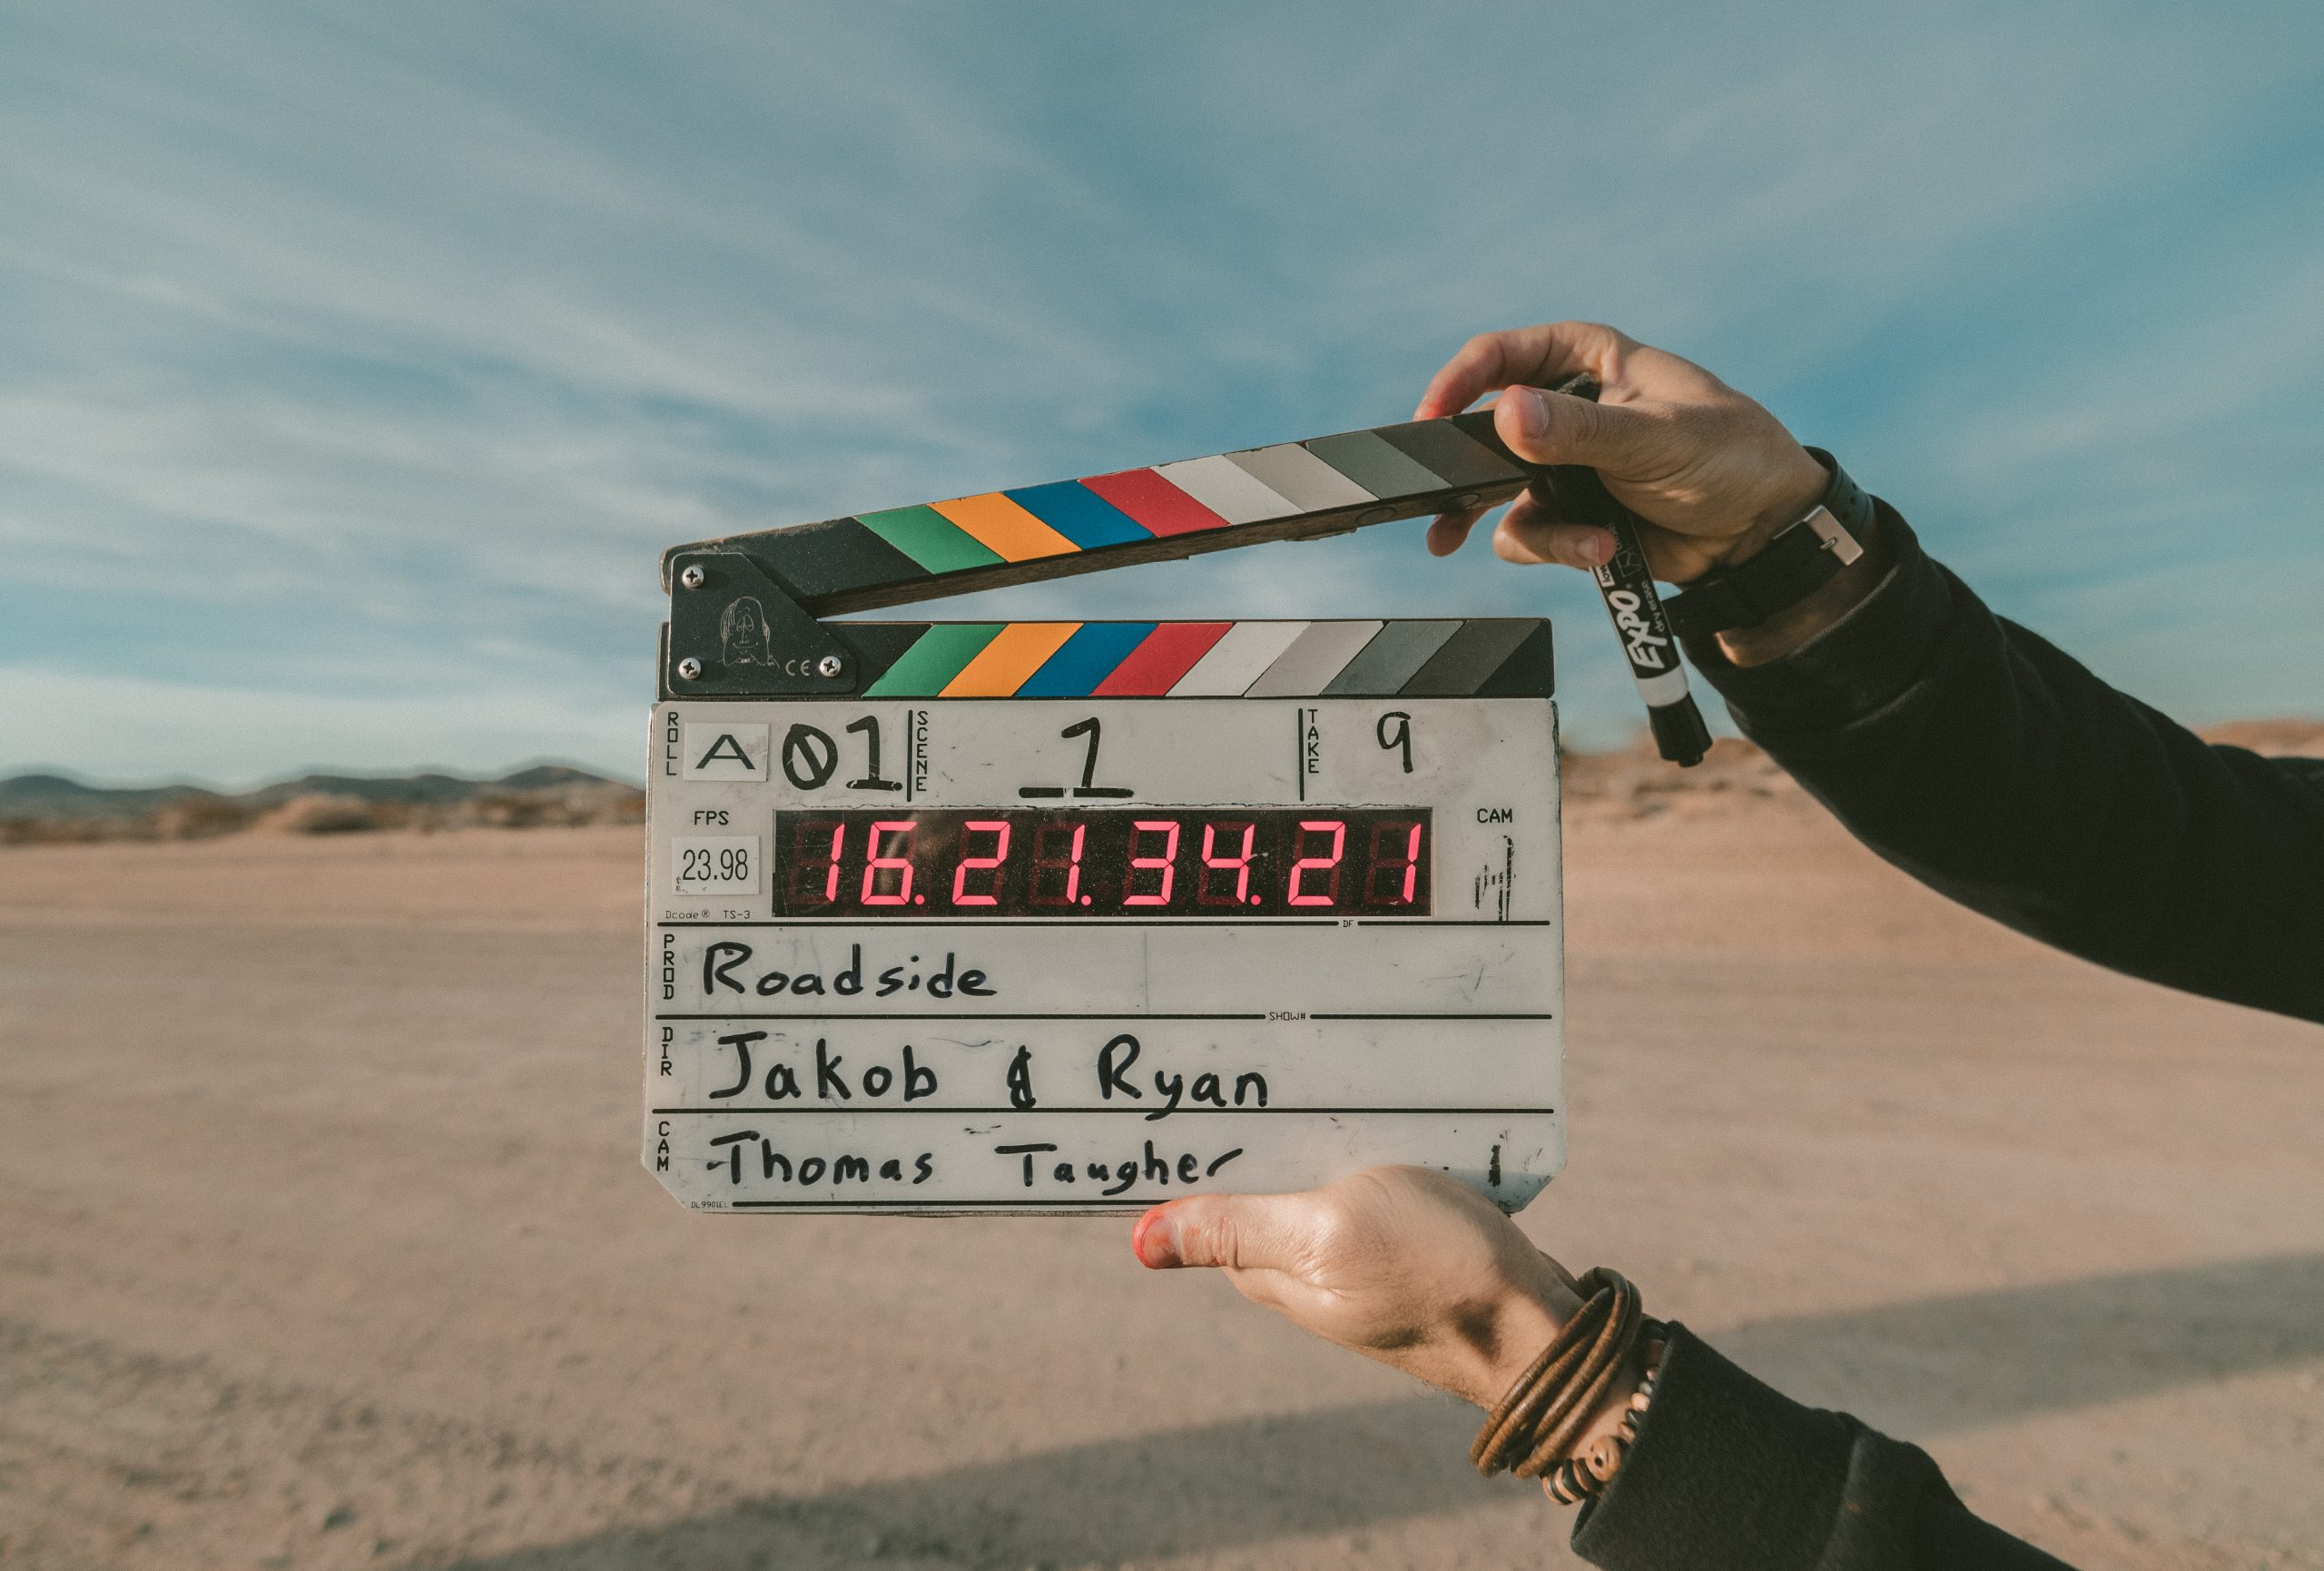 """In a desert, a man holds a film clapperboard that reads """"roadside, Jakob & Ryan, Thomas Taugher."""" The man is about to clap the clapper."""